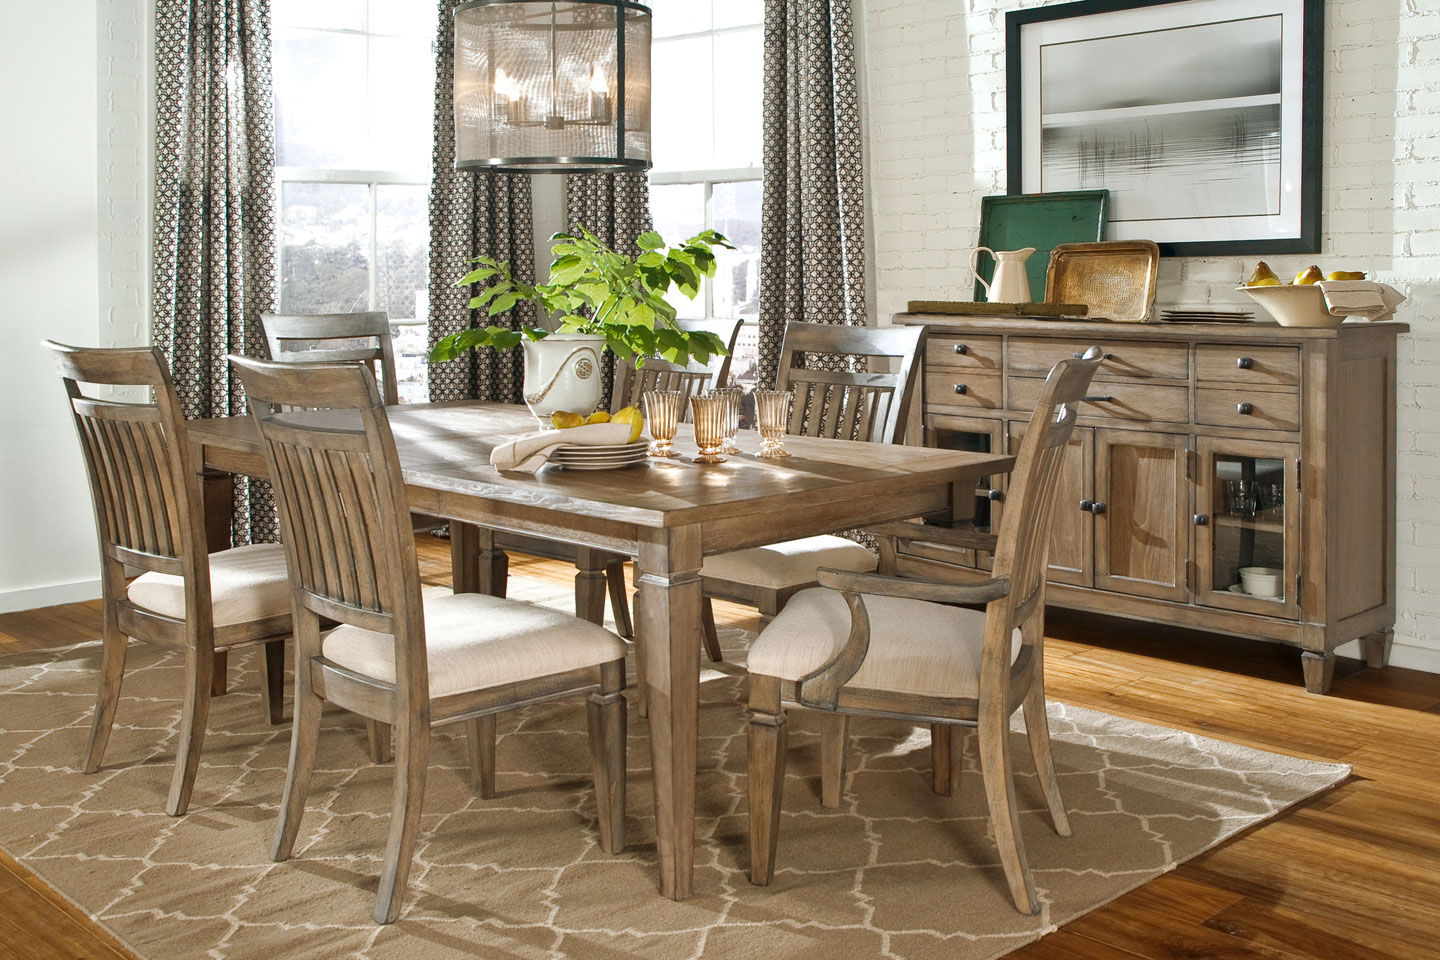 gavin rustic dining room set dining furniture